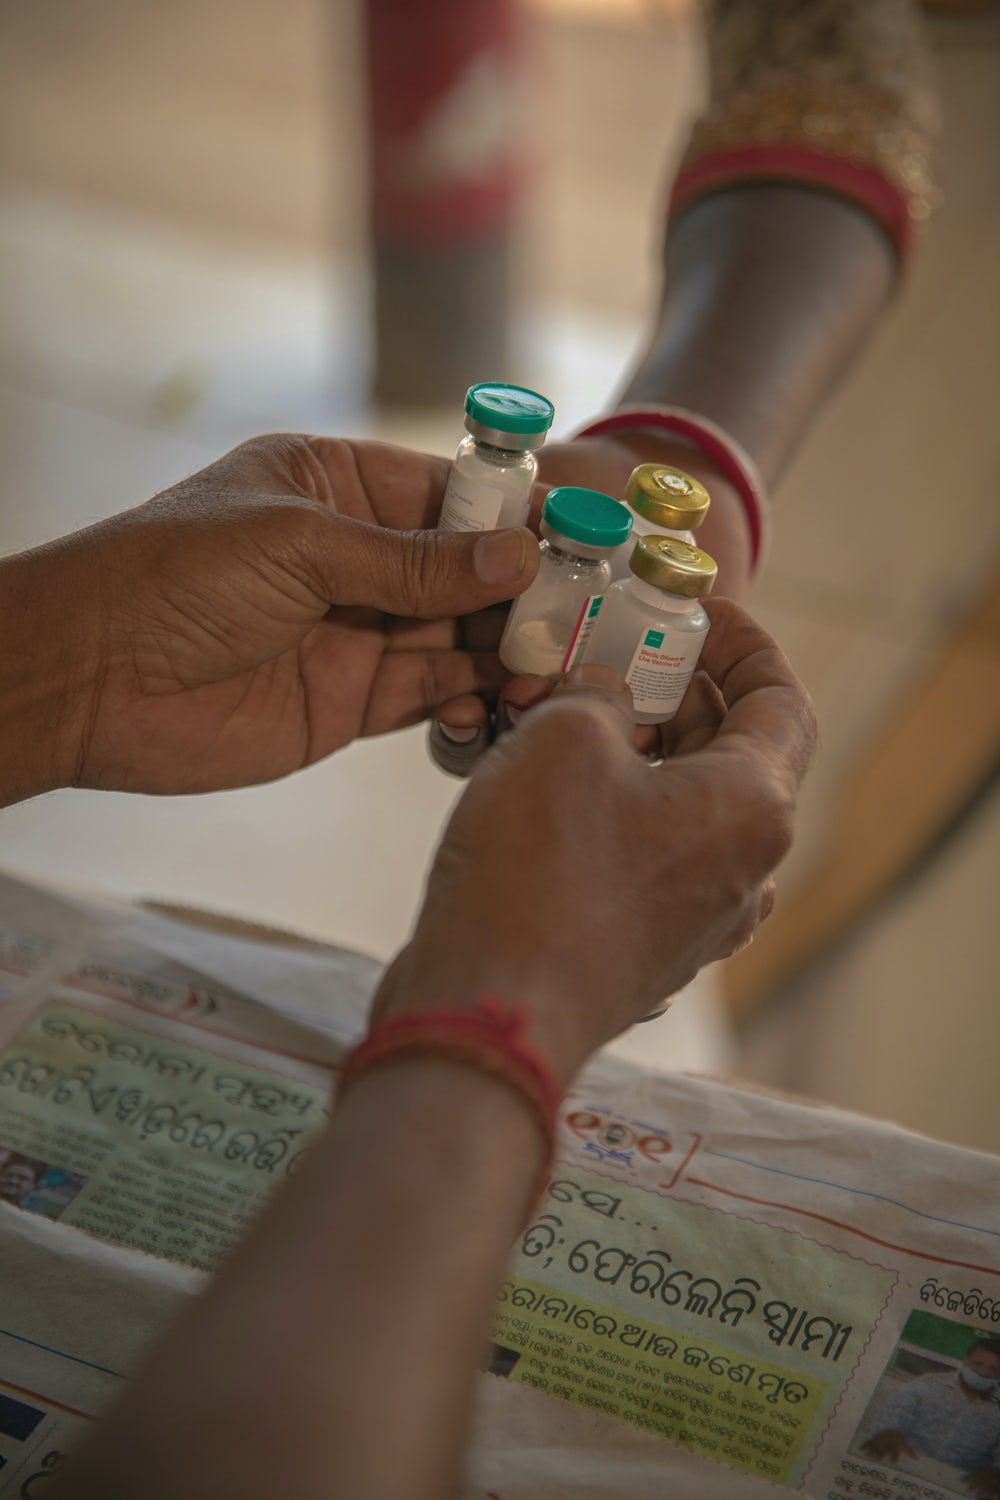 Vials of animal vaccines are handed to a vet's hand over a counter in India.